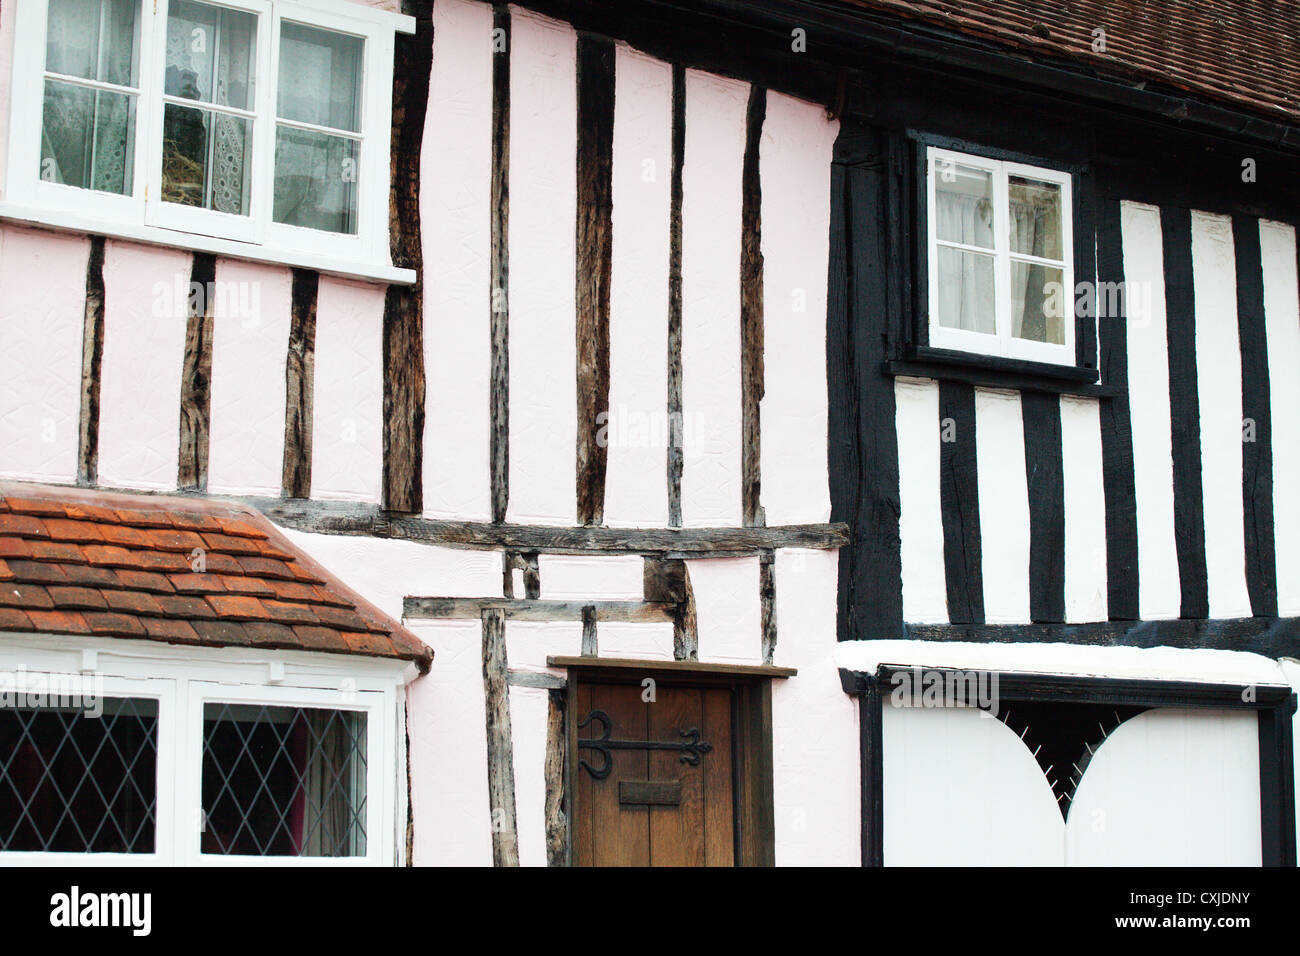 Timber Frame Houses Stock Photos & Timber Frame Houses Stock Images ...